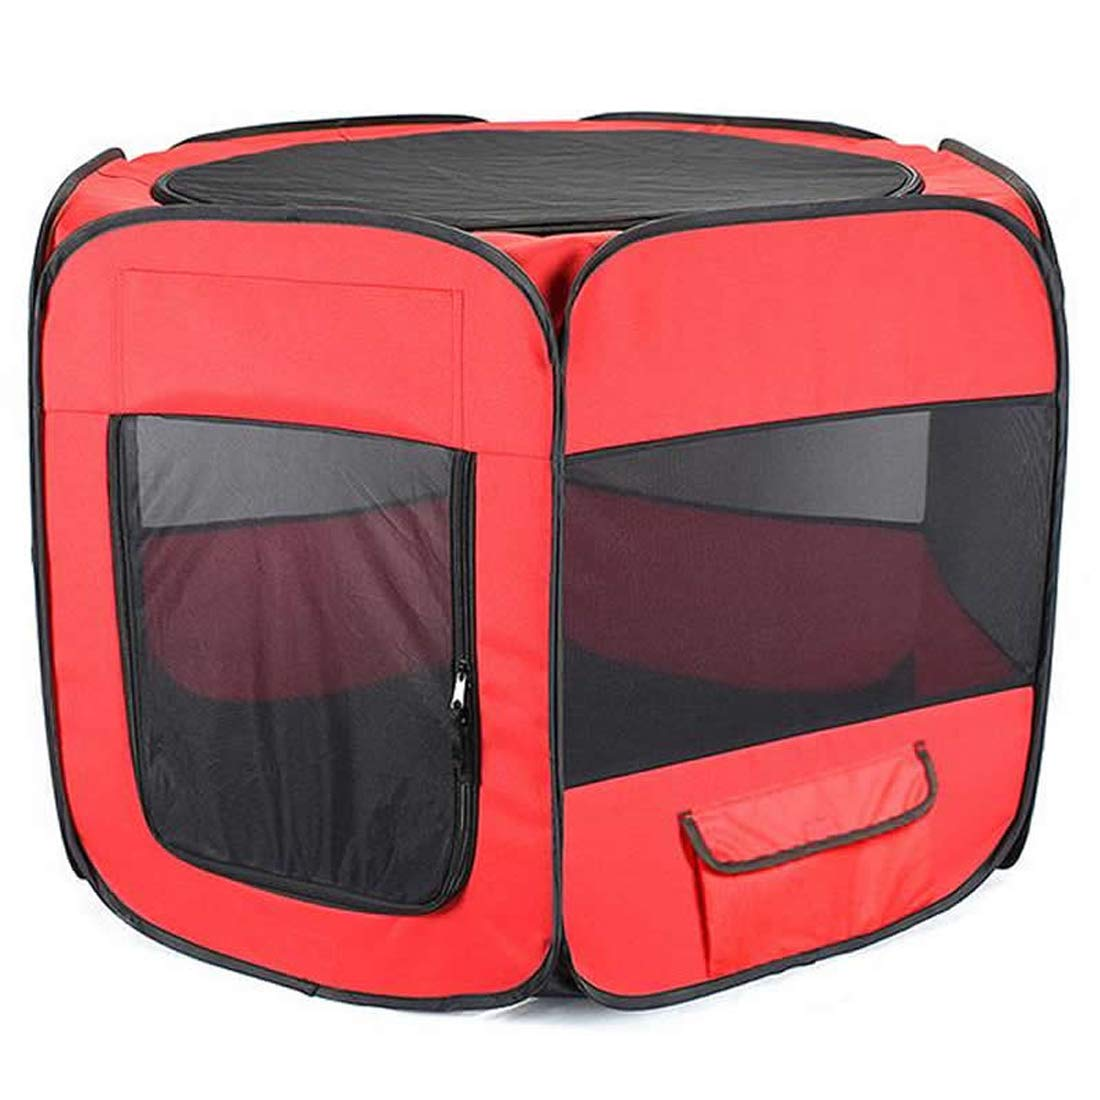 1 A 1 A Zhyaj Cat Tent Foldable Breathable Puppy Cat House Kennel Portable Outdoor Fence Dog Cat Bed Nest Kennel Pet Extra Outdoor Dog Kennel for Large Dogs,1,A